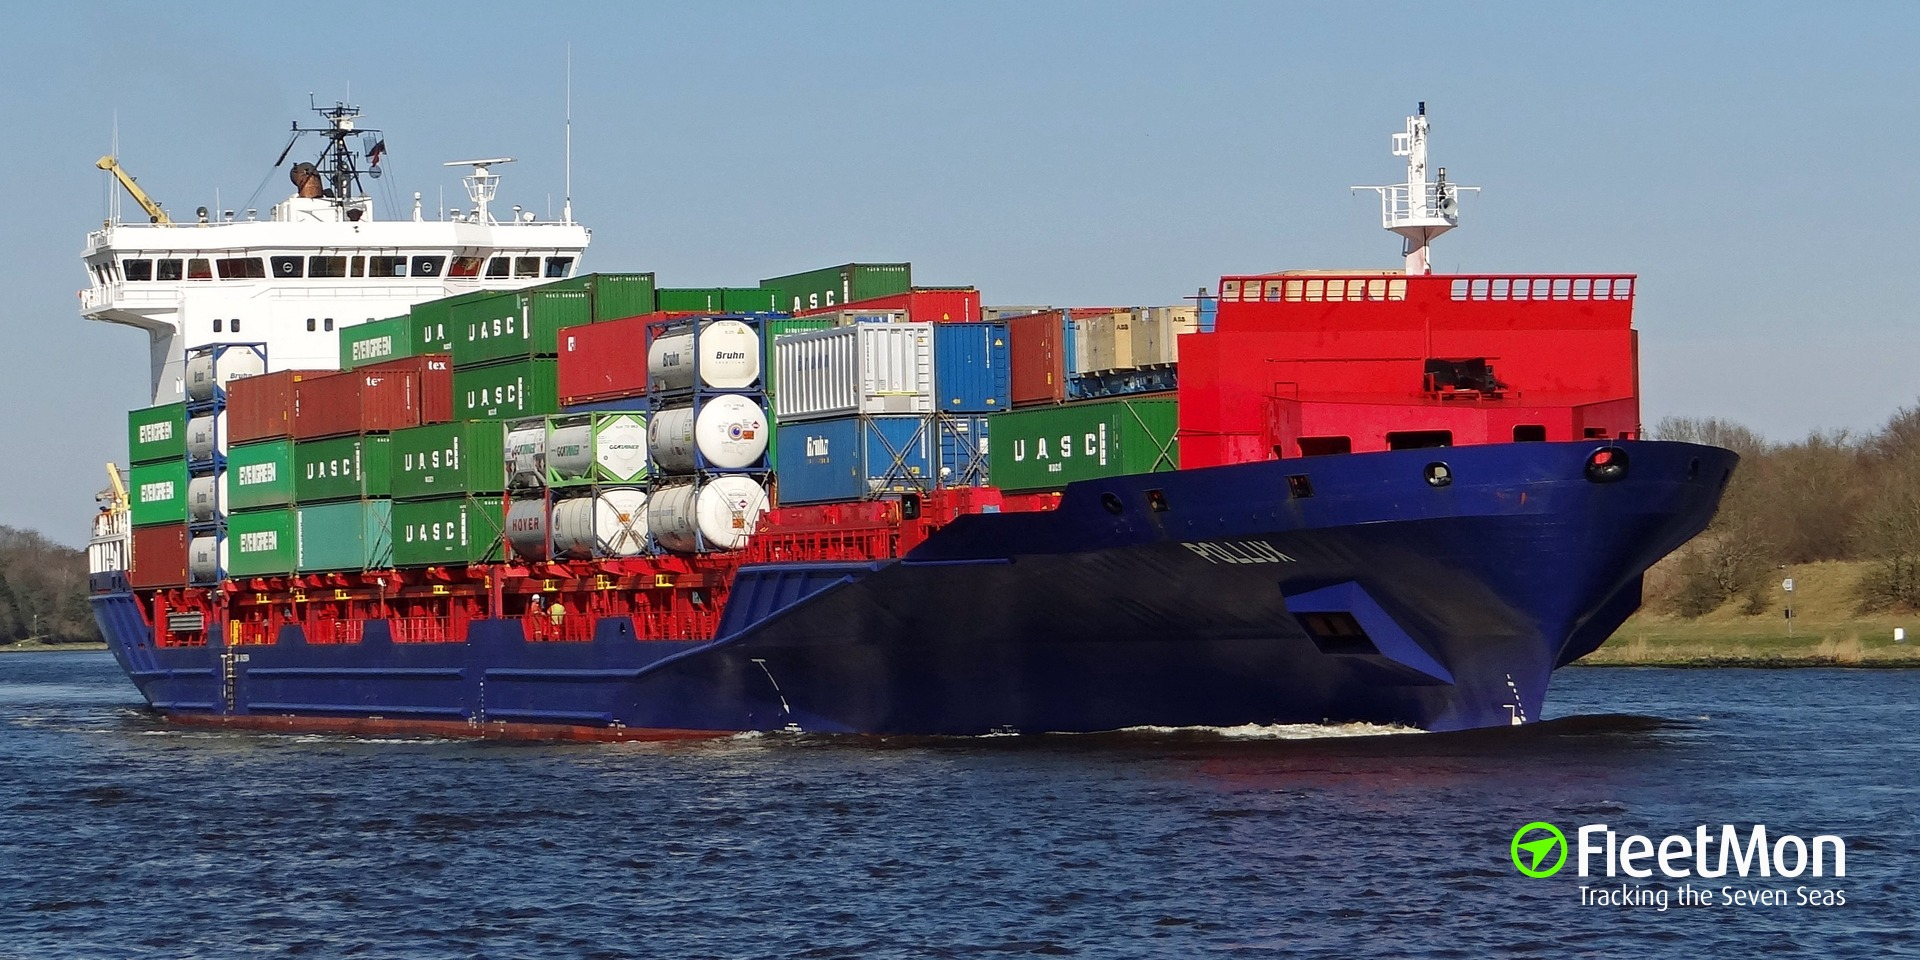 Feeder container ship collided with pier at Bremerhaven